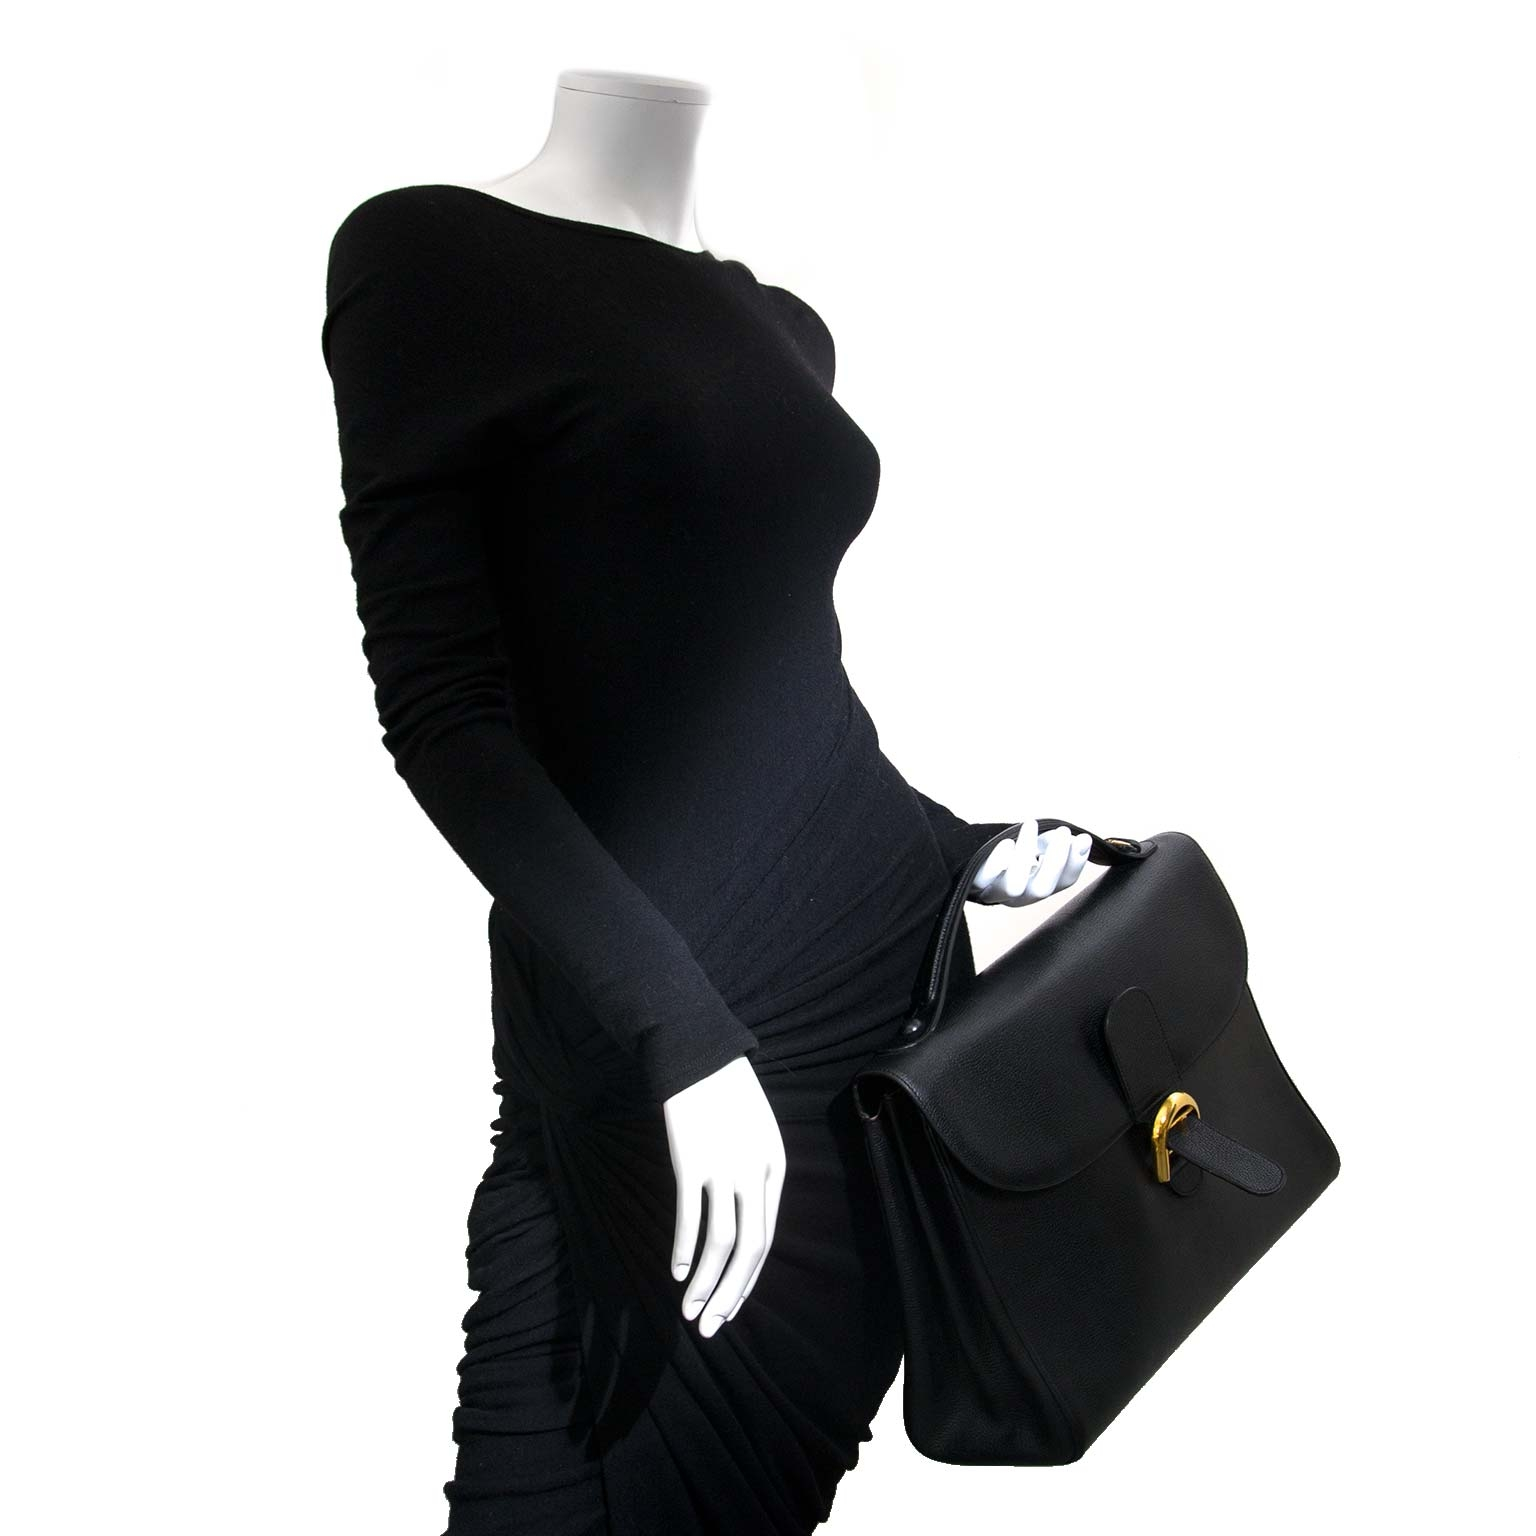 delvaux black brillant briefcase now for sale at labellov vintage fashion webshop belgium